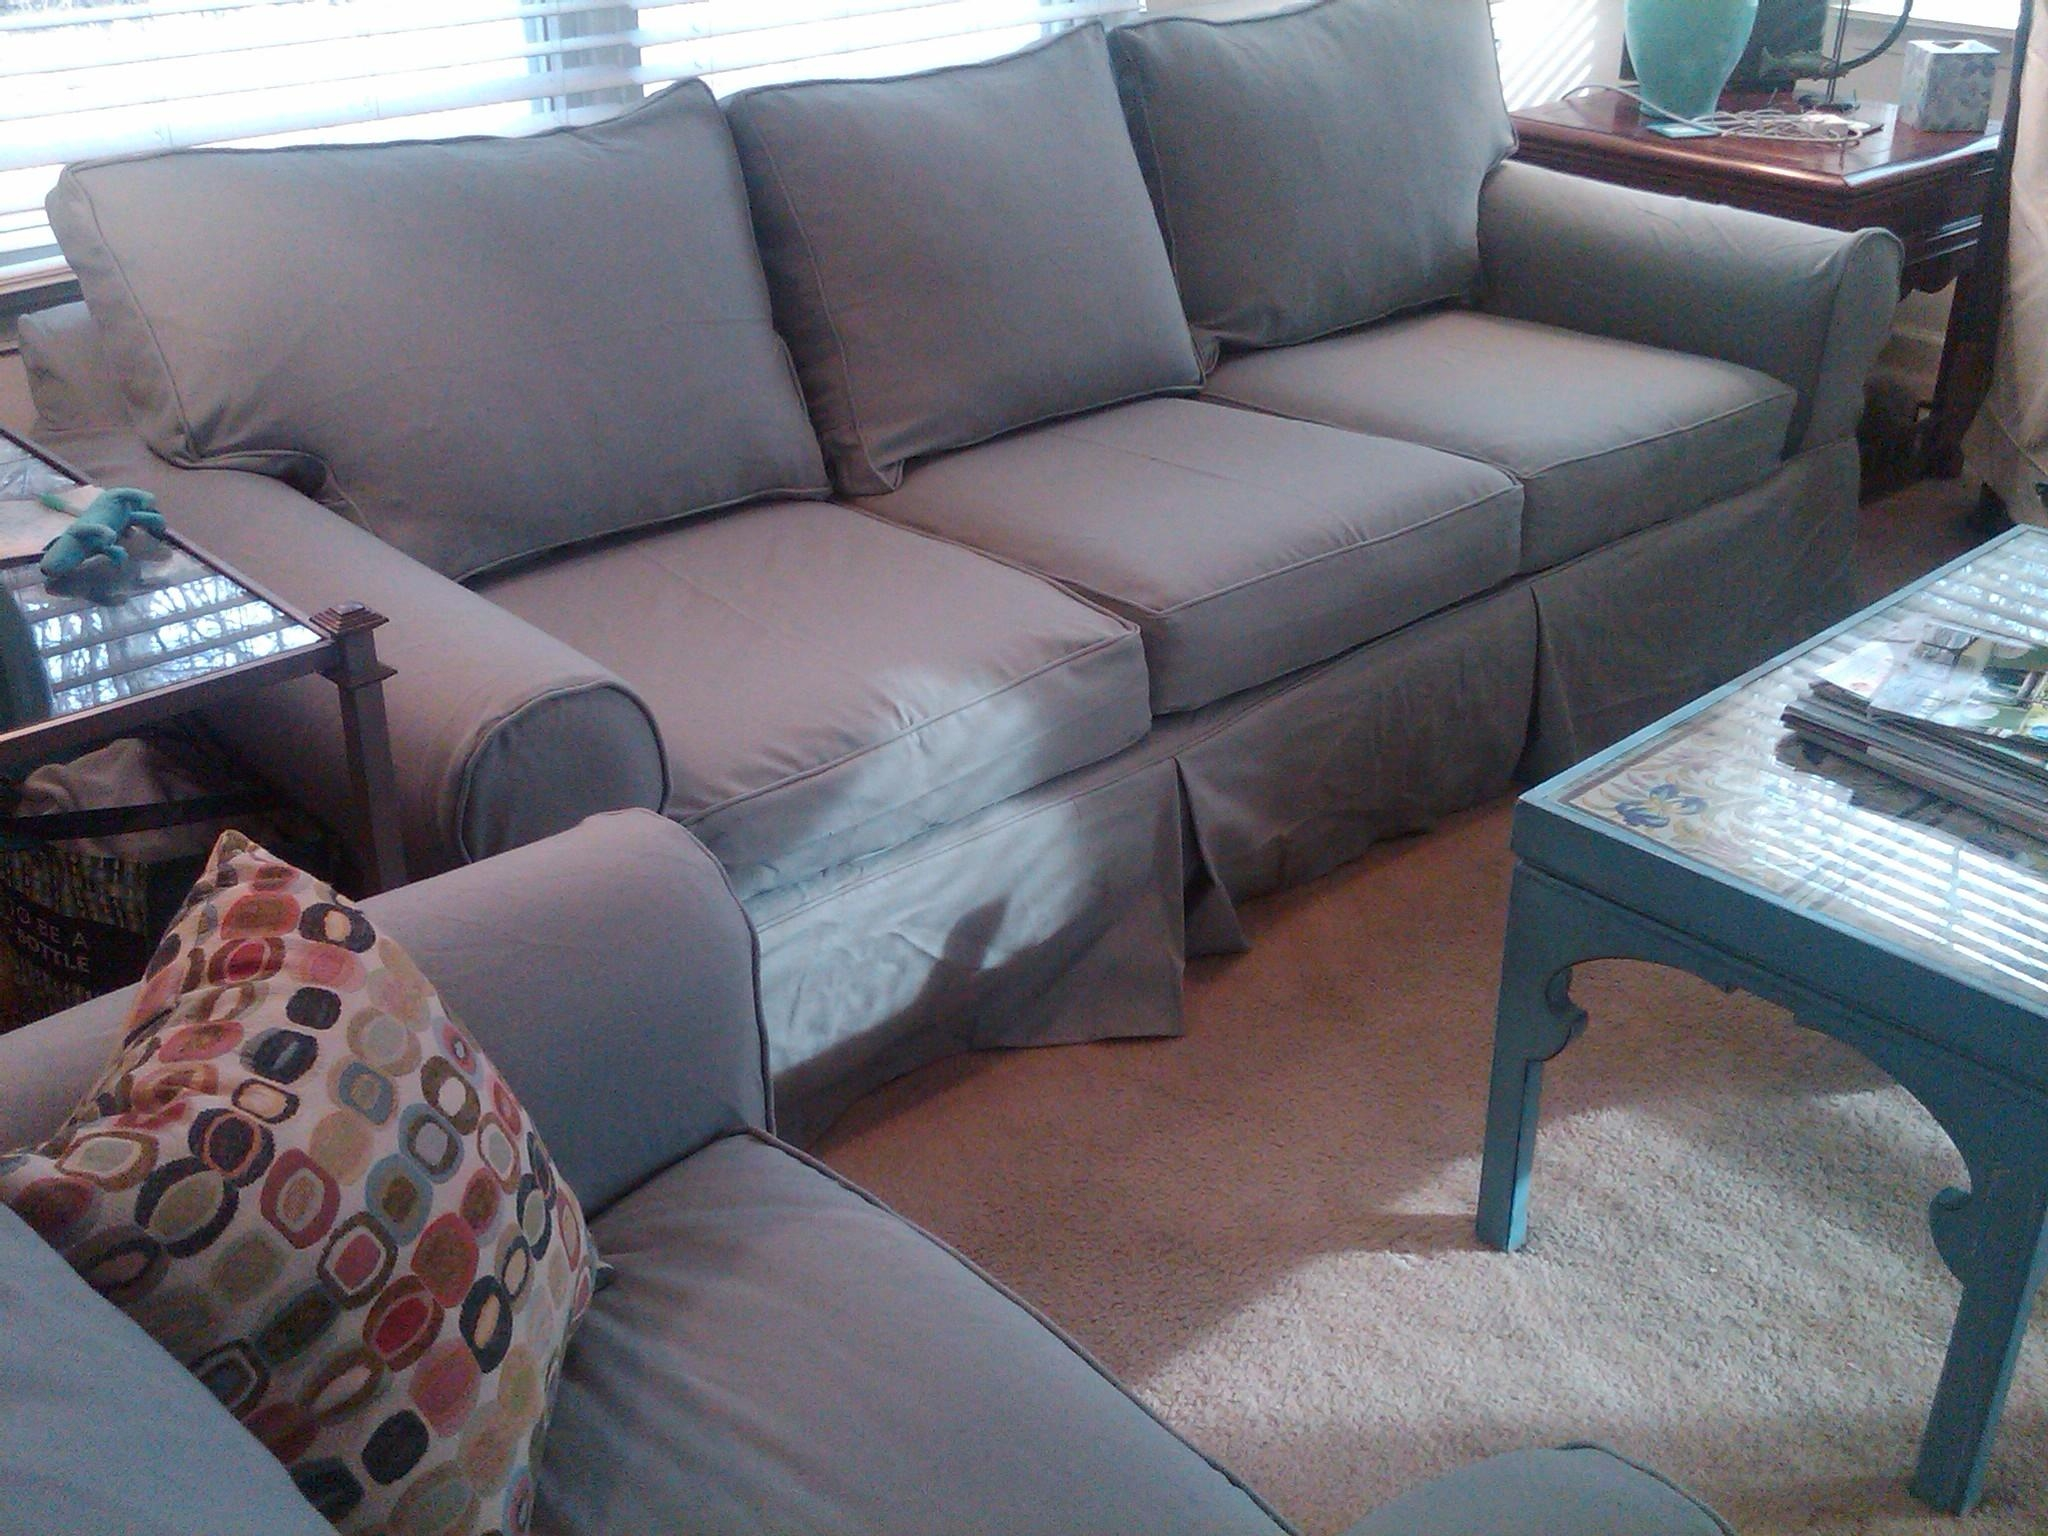 Replacement Slipcover Outlet Replacement Slipcovers For Famous Intended For Denim Sofa Slipcovers (View 5 of 20)